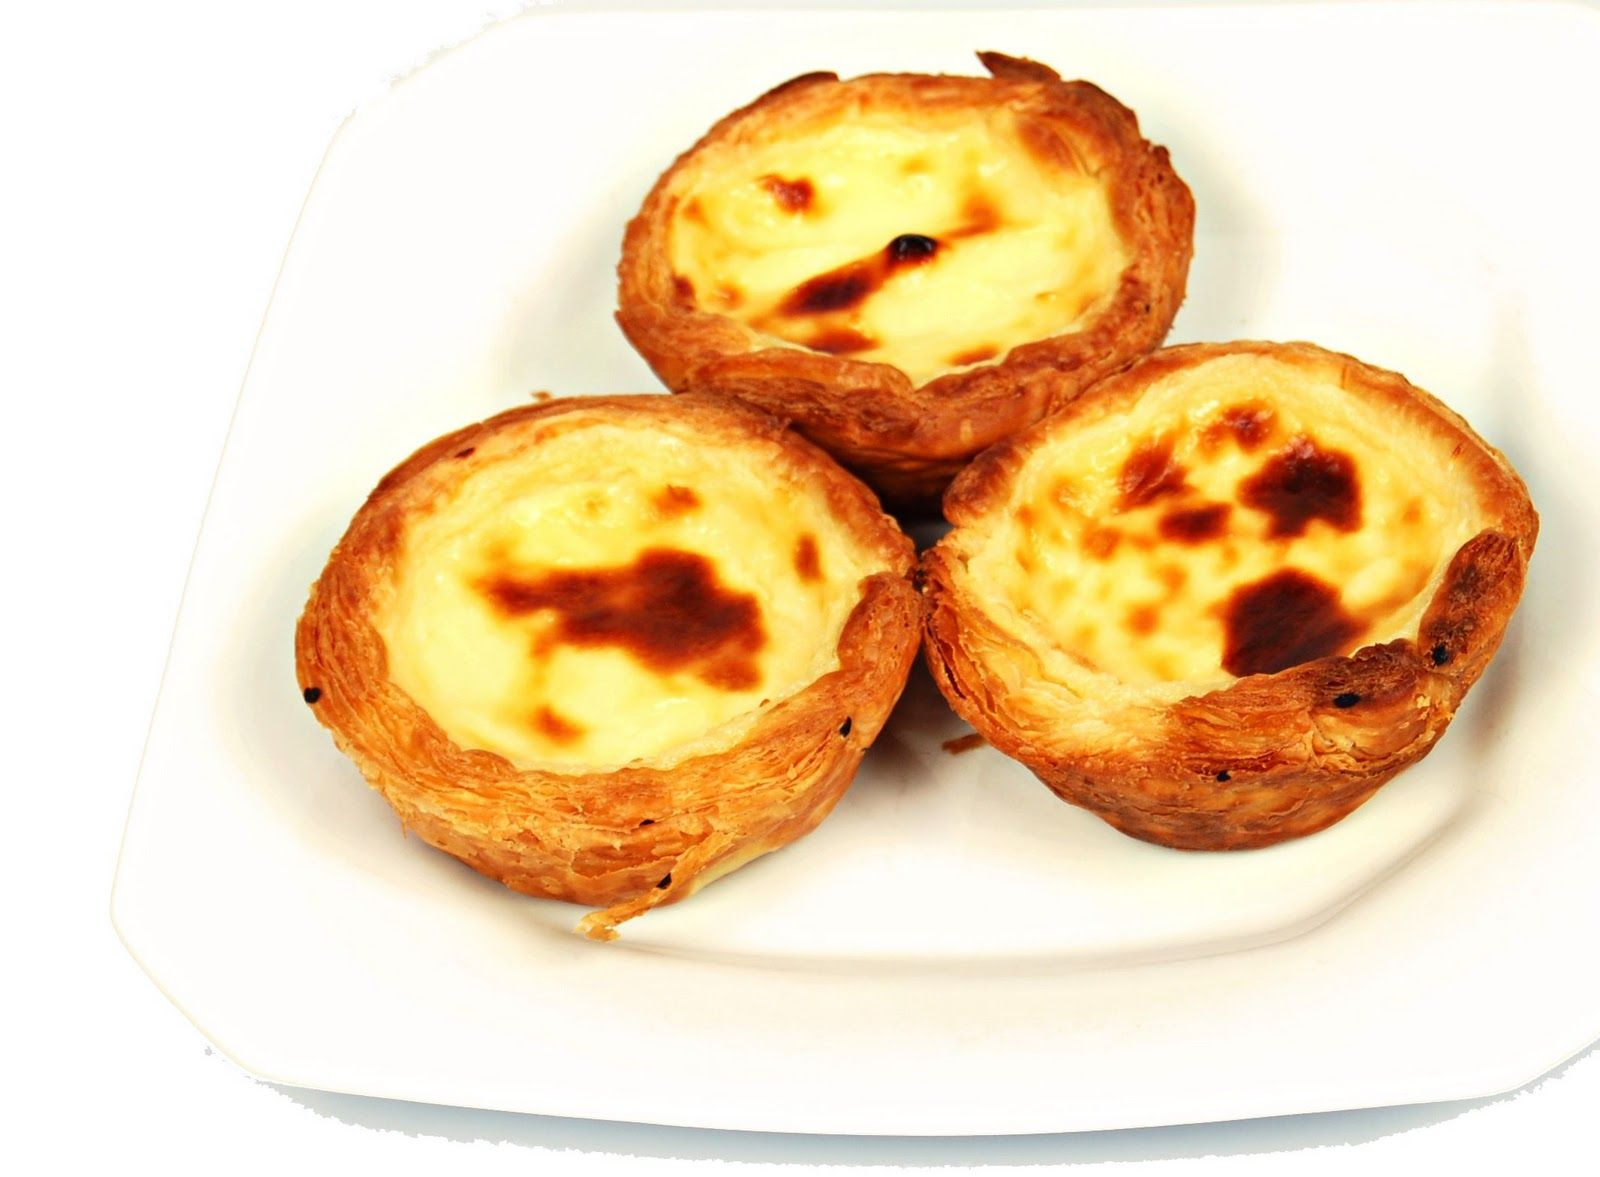 How to make portuguese natas itsallaboutportugesedeserts - Pastel De Nata Portuguese Speciality Portugalportuguesebananaspastel De Natarecipesdesserts